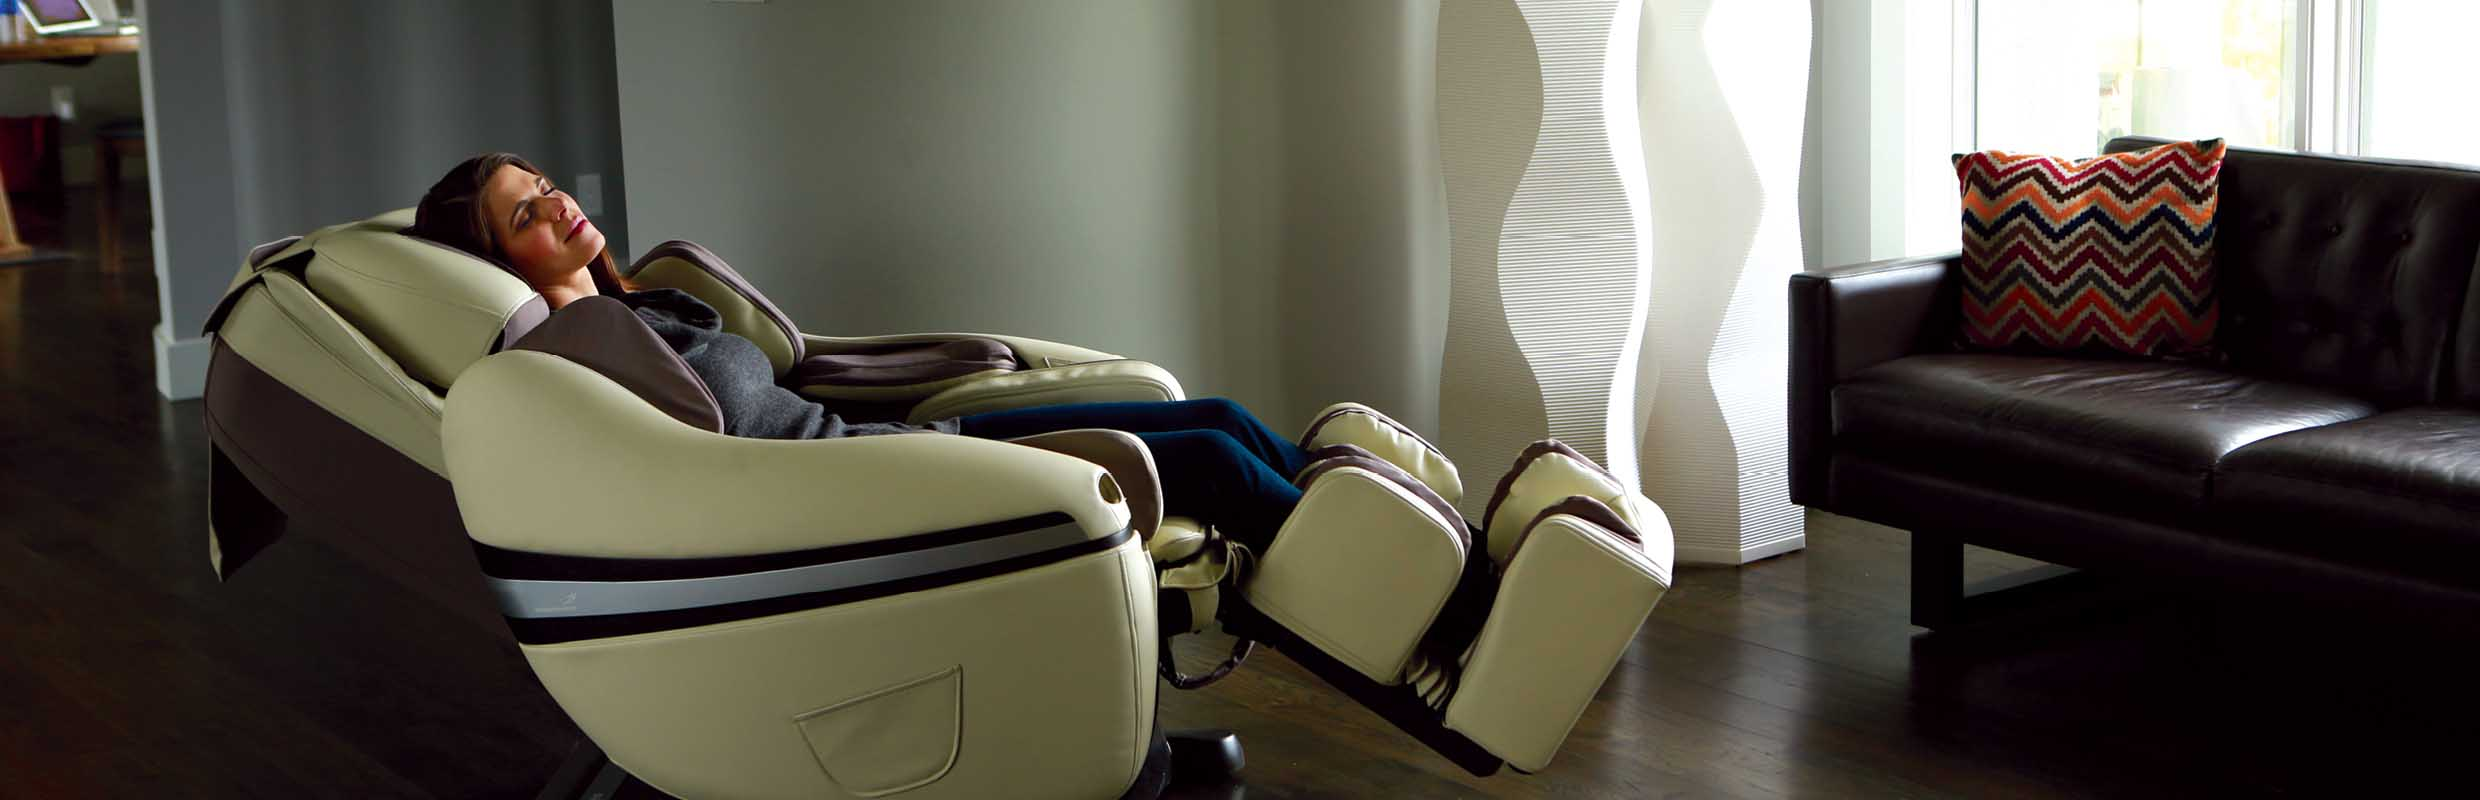 Massage Chairs Massage